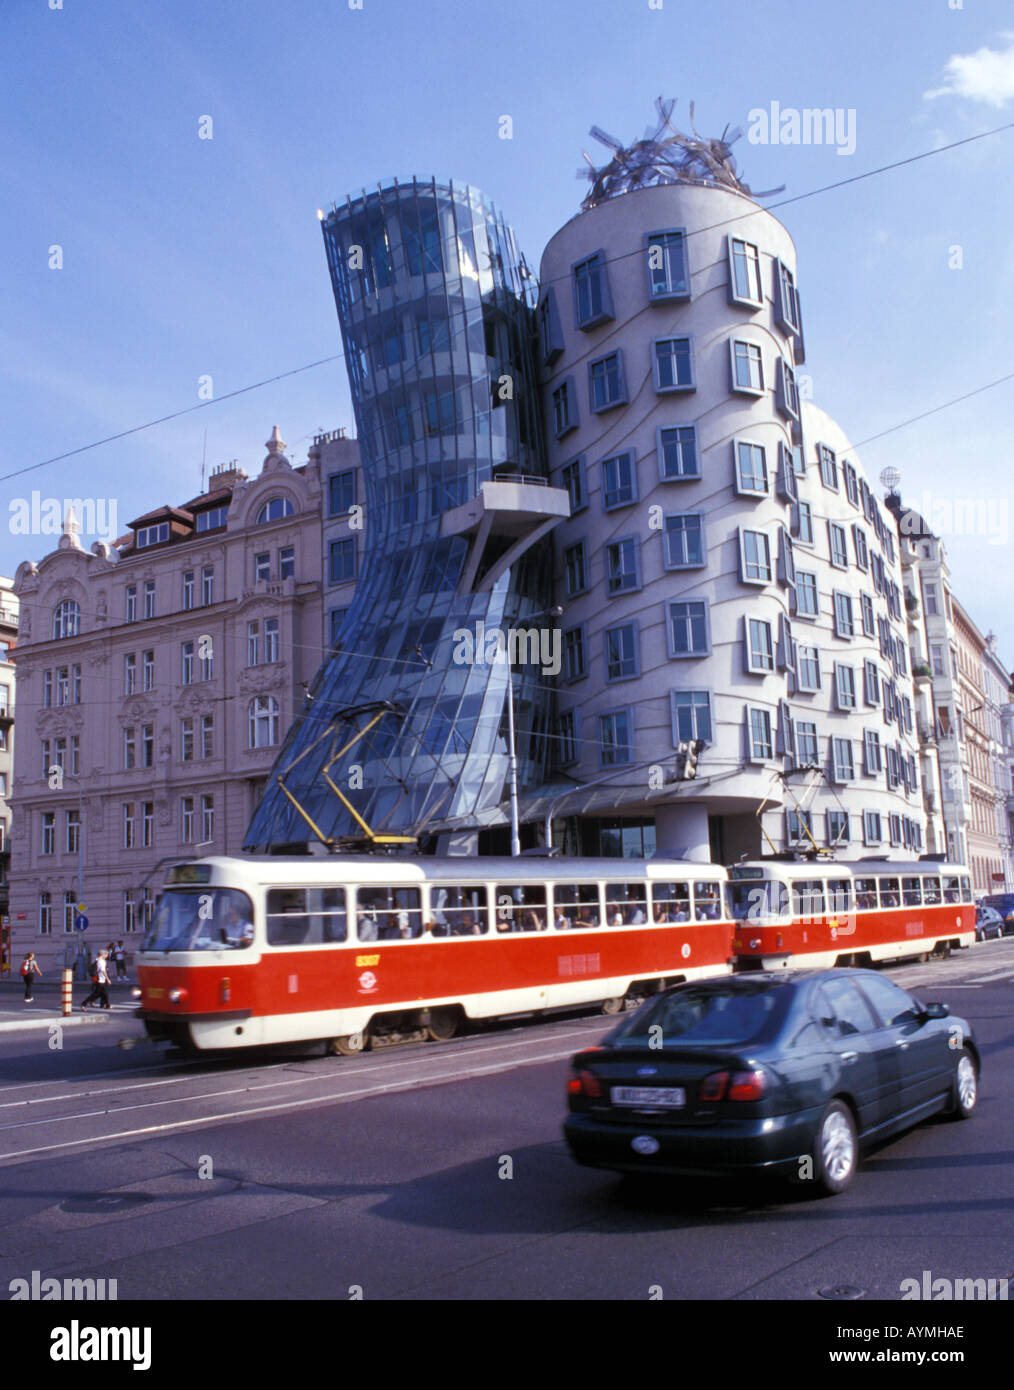 Czech Republic, Prague, Ginger and Fred Building by architect Frank Gehry - Stock Image